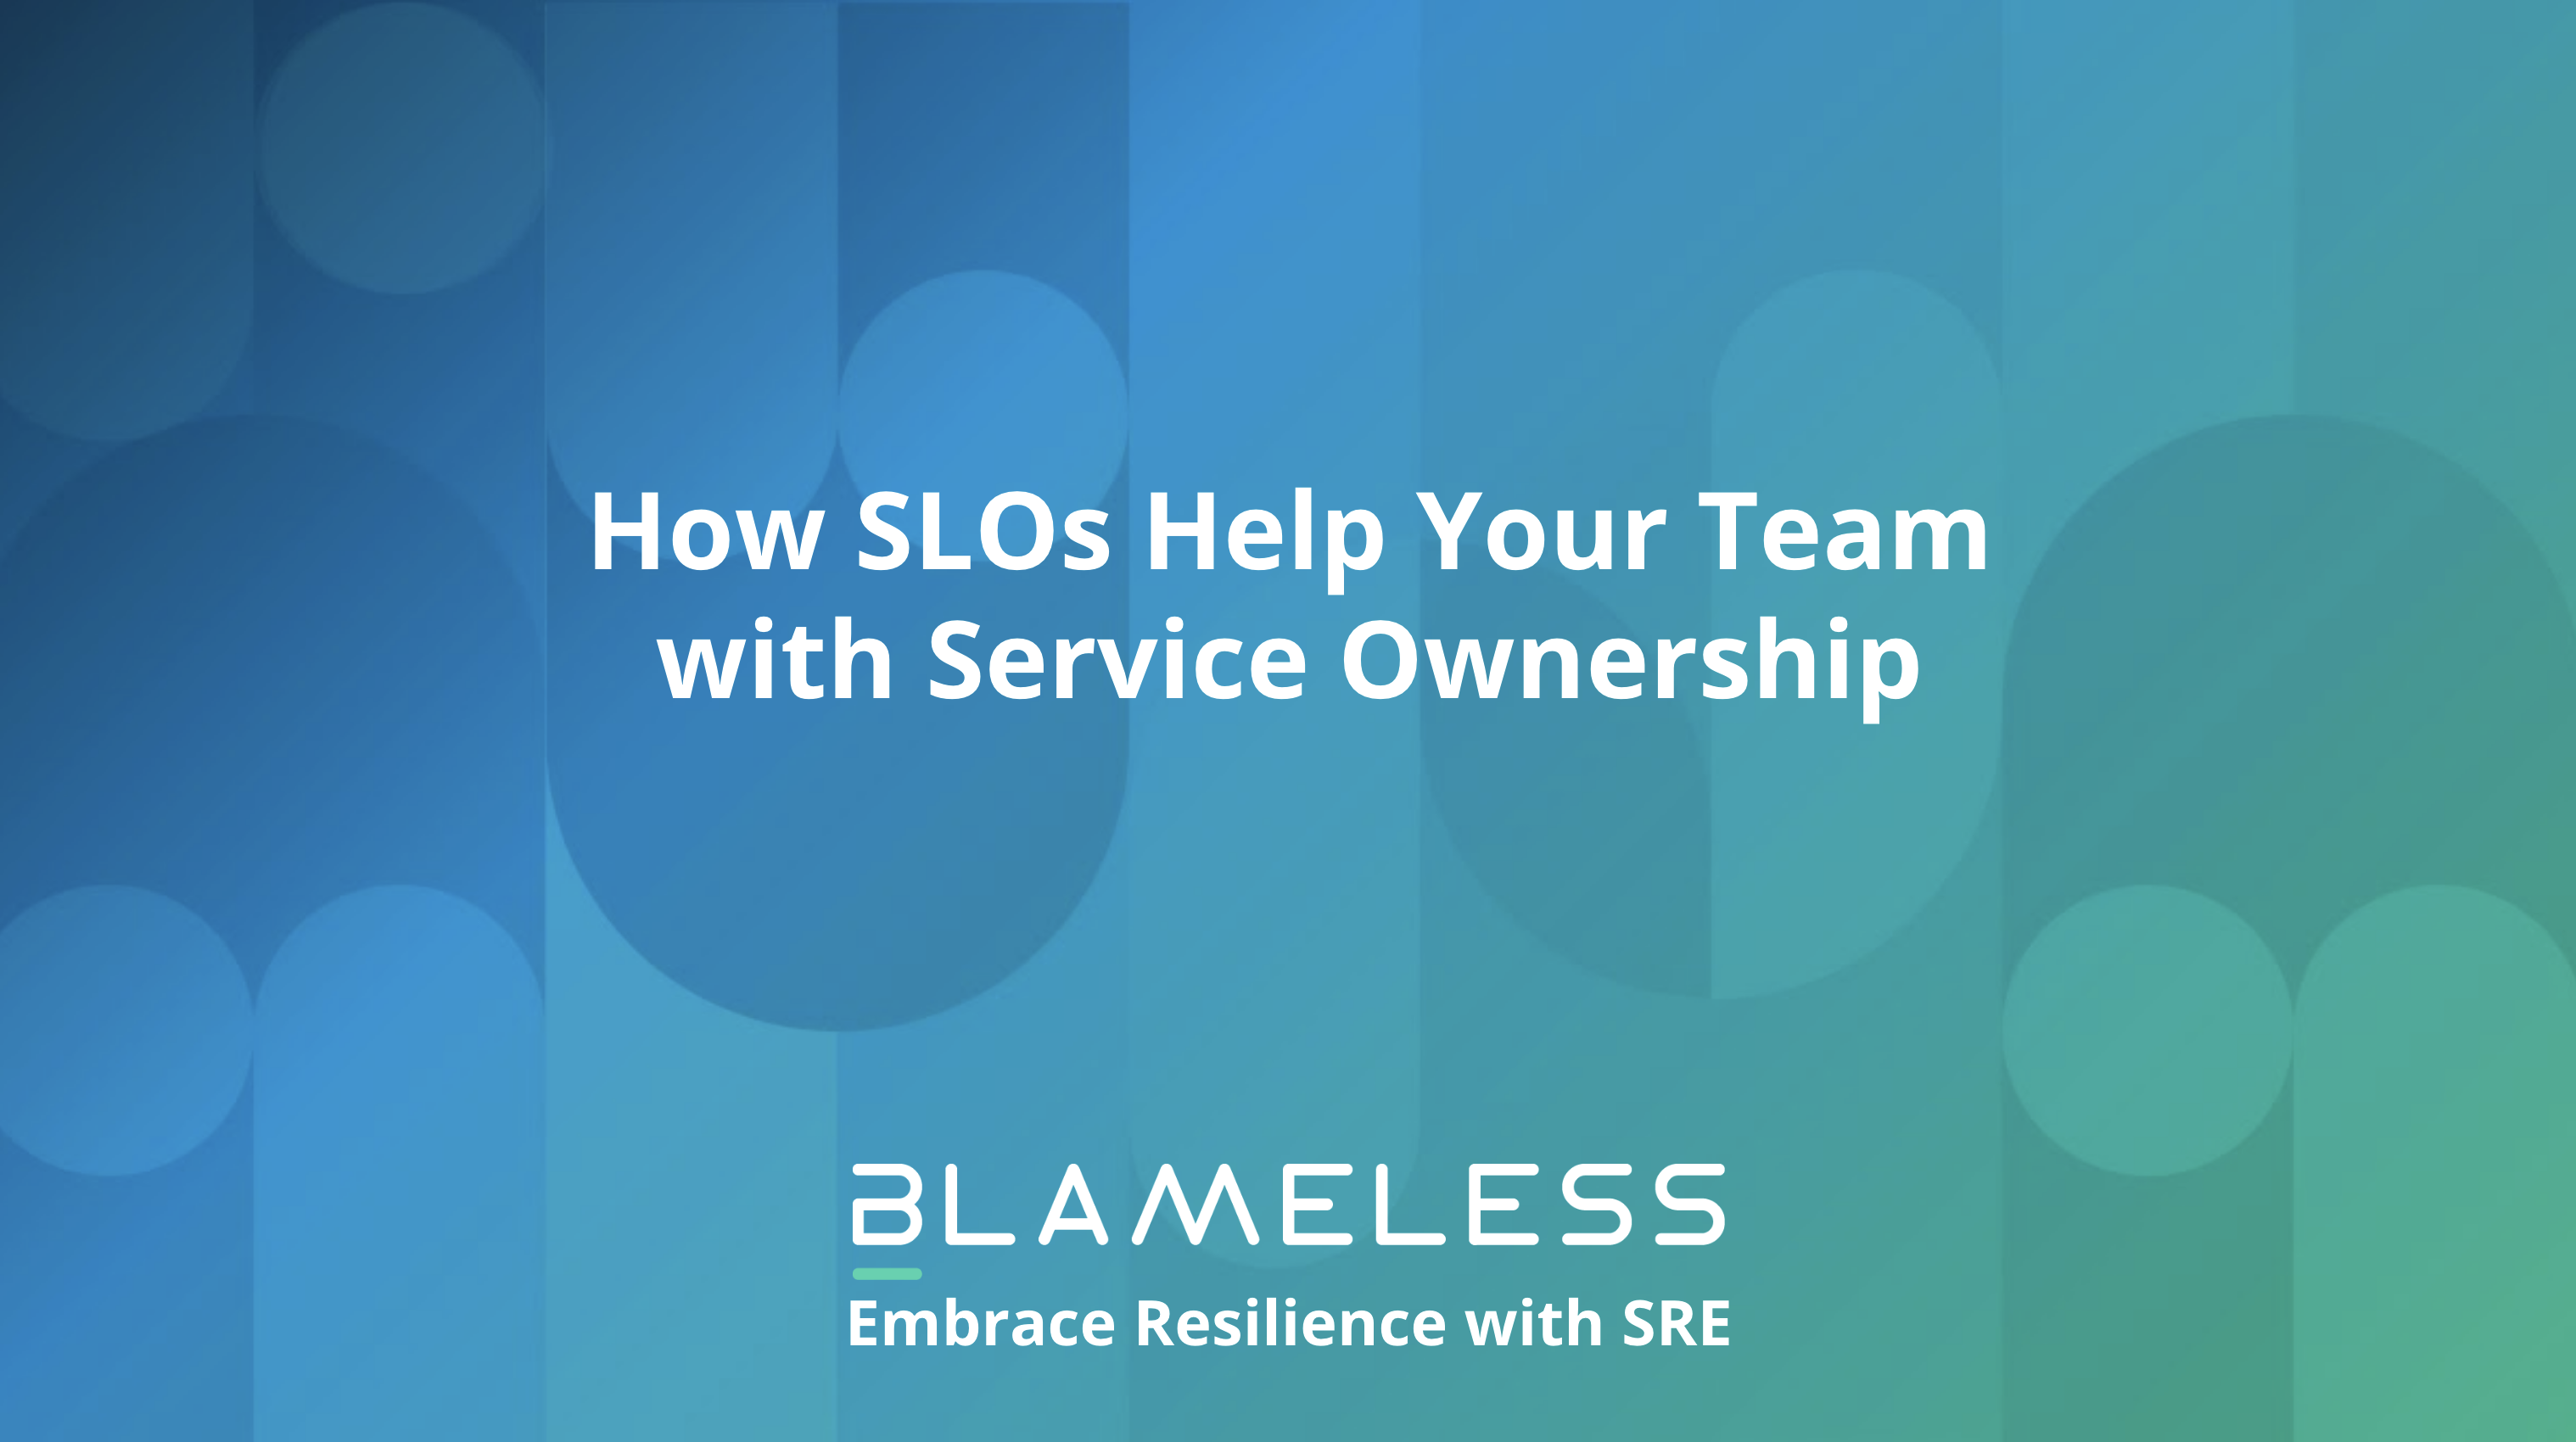 How SLOs Help Your Team with Service Ownership